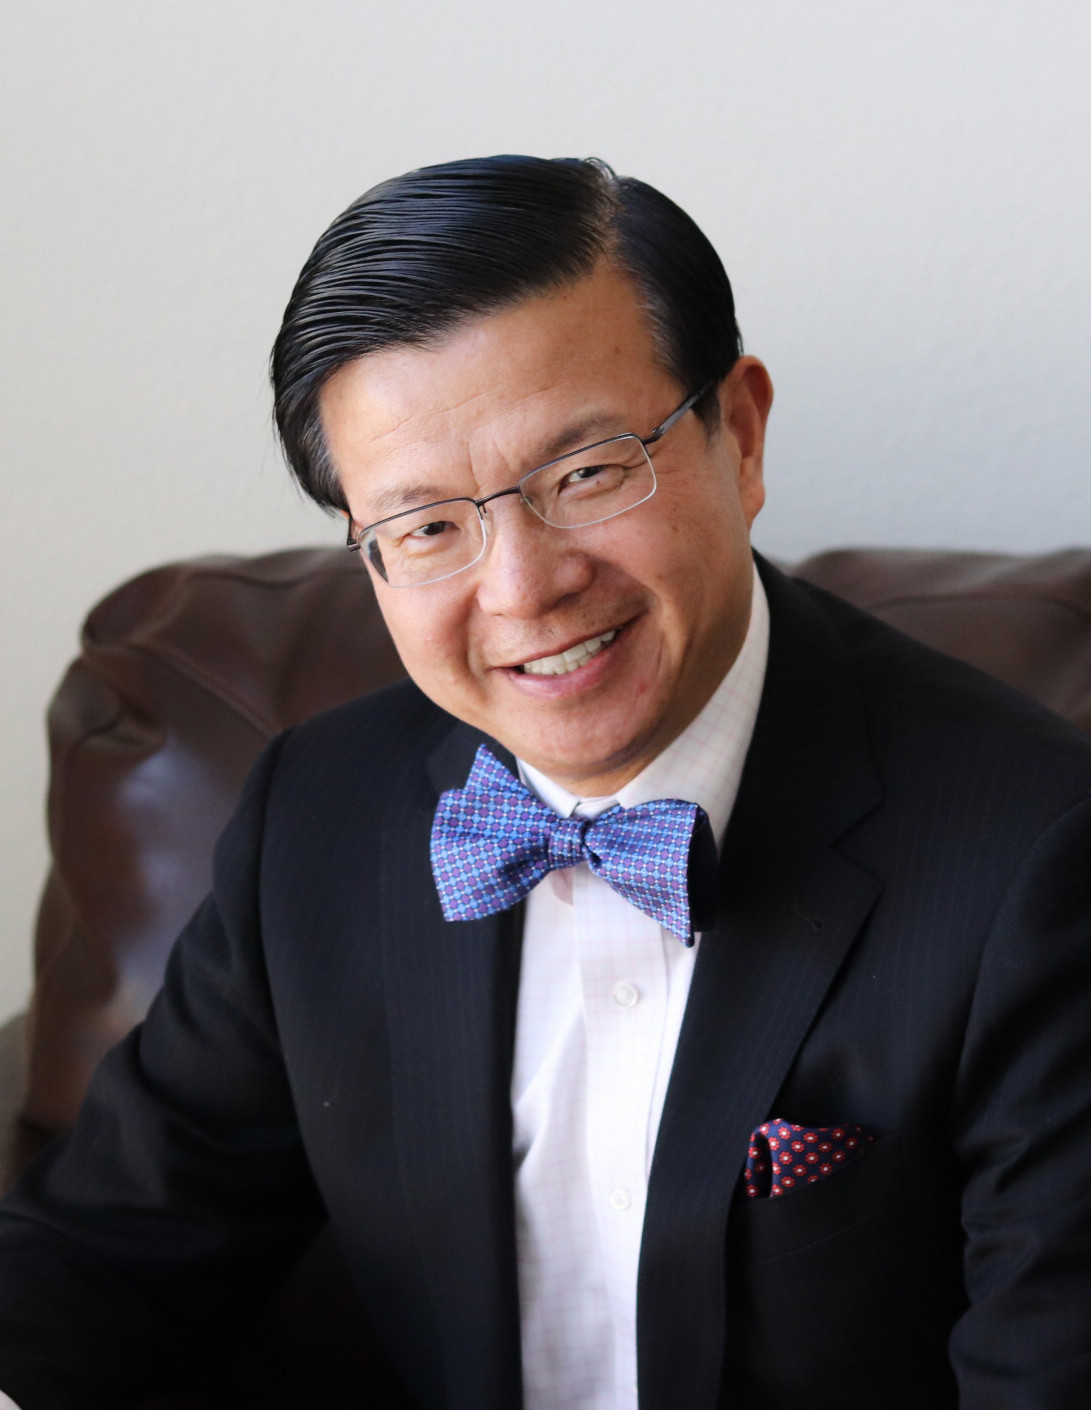 Louie Lu, Founder & CEO